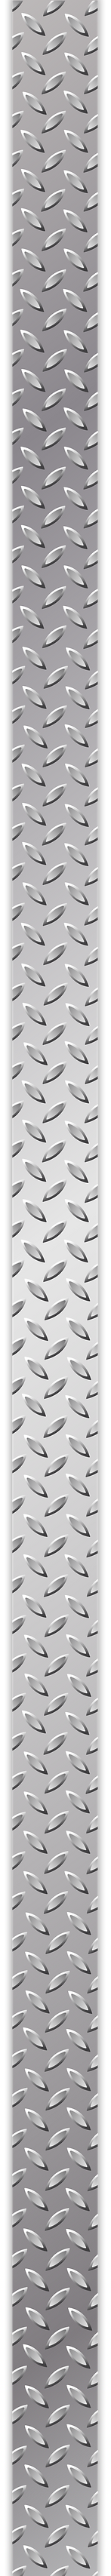 Metal-Frame-with-shadow.png